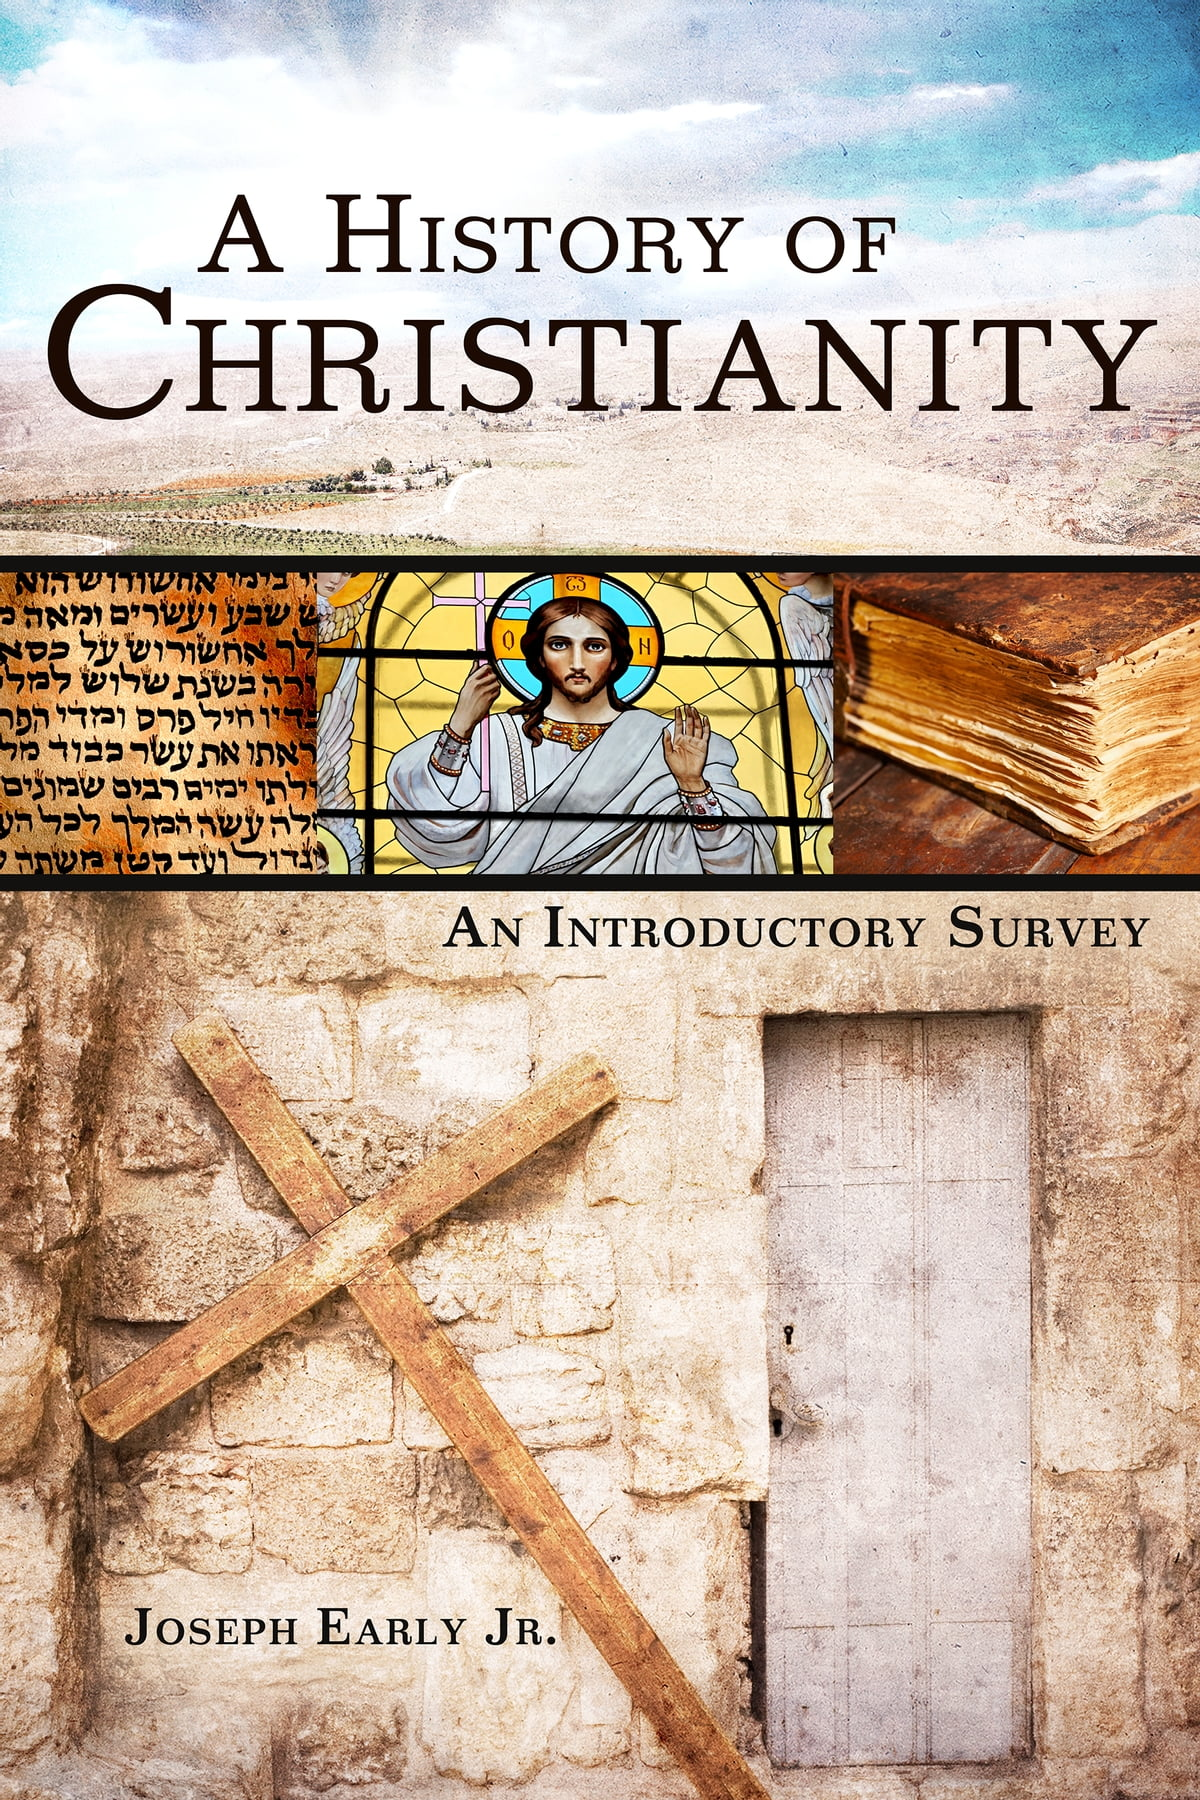 """a history of the development of modern christianity The development of denominations throughout history the development of denominations throughout history  society and began to speak about the need of personal faith, sanctification, and """"personal holiness,"""" the continual development of maturity in christian faith  within churches started along time ago church history and the."""